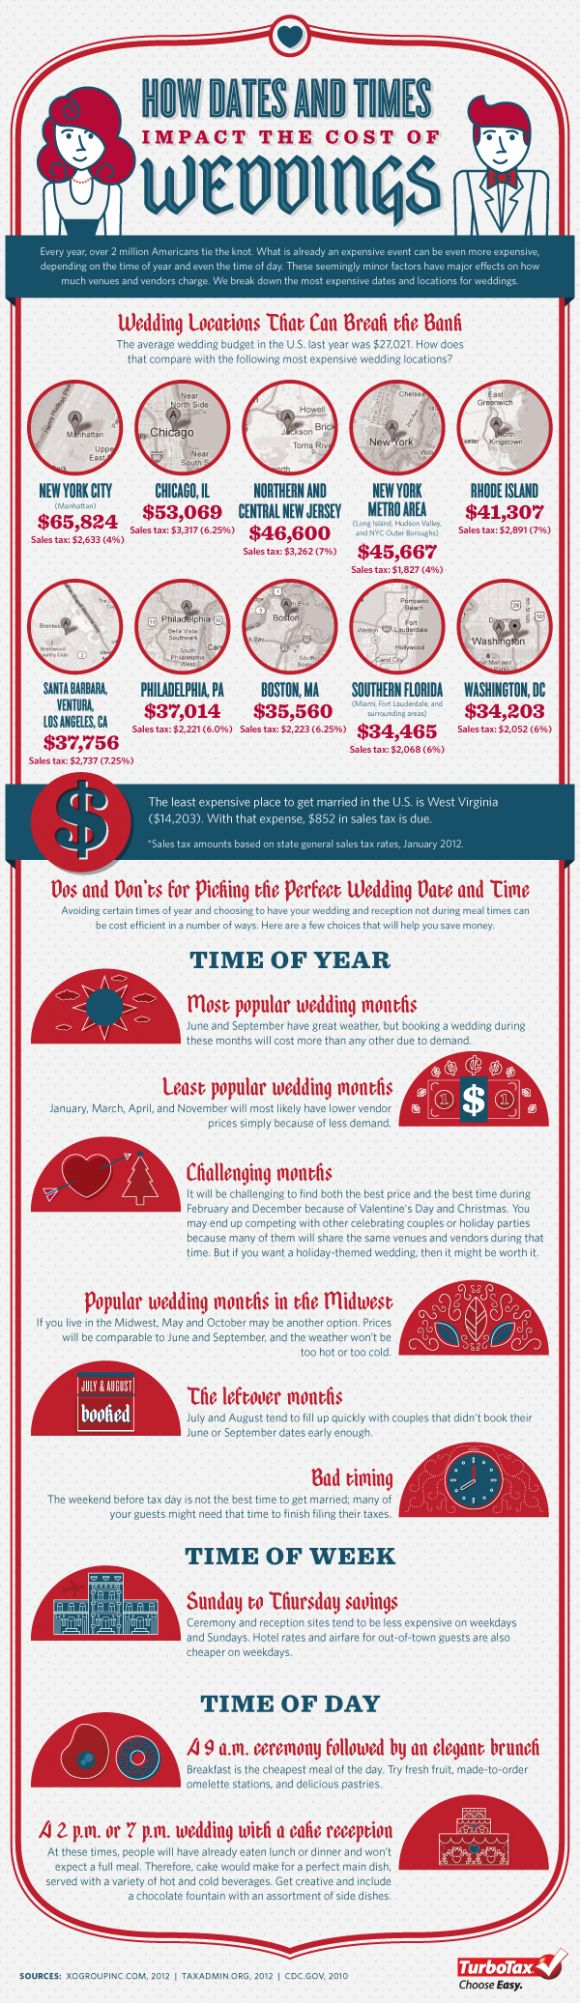 Wedding Dates andTimesinfographic - how the two impact the cost of your wedding